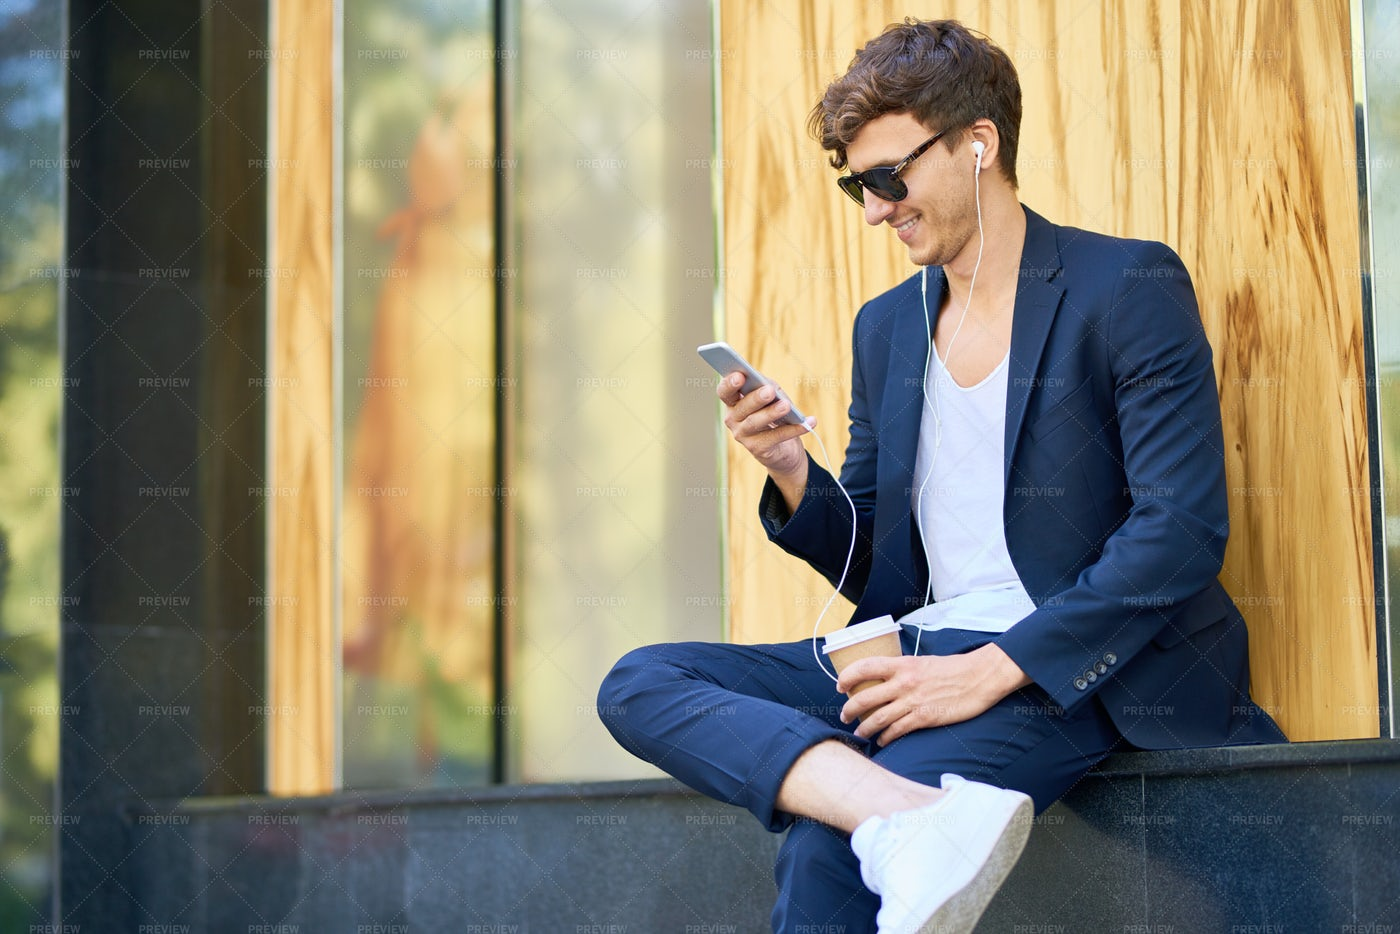 Stylish Young Man With Smartphone...: Stock Photos